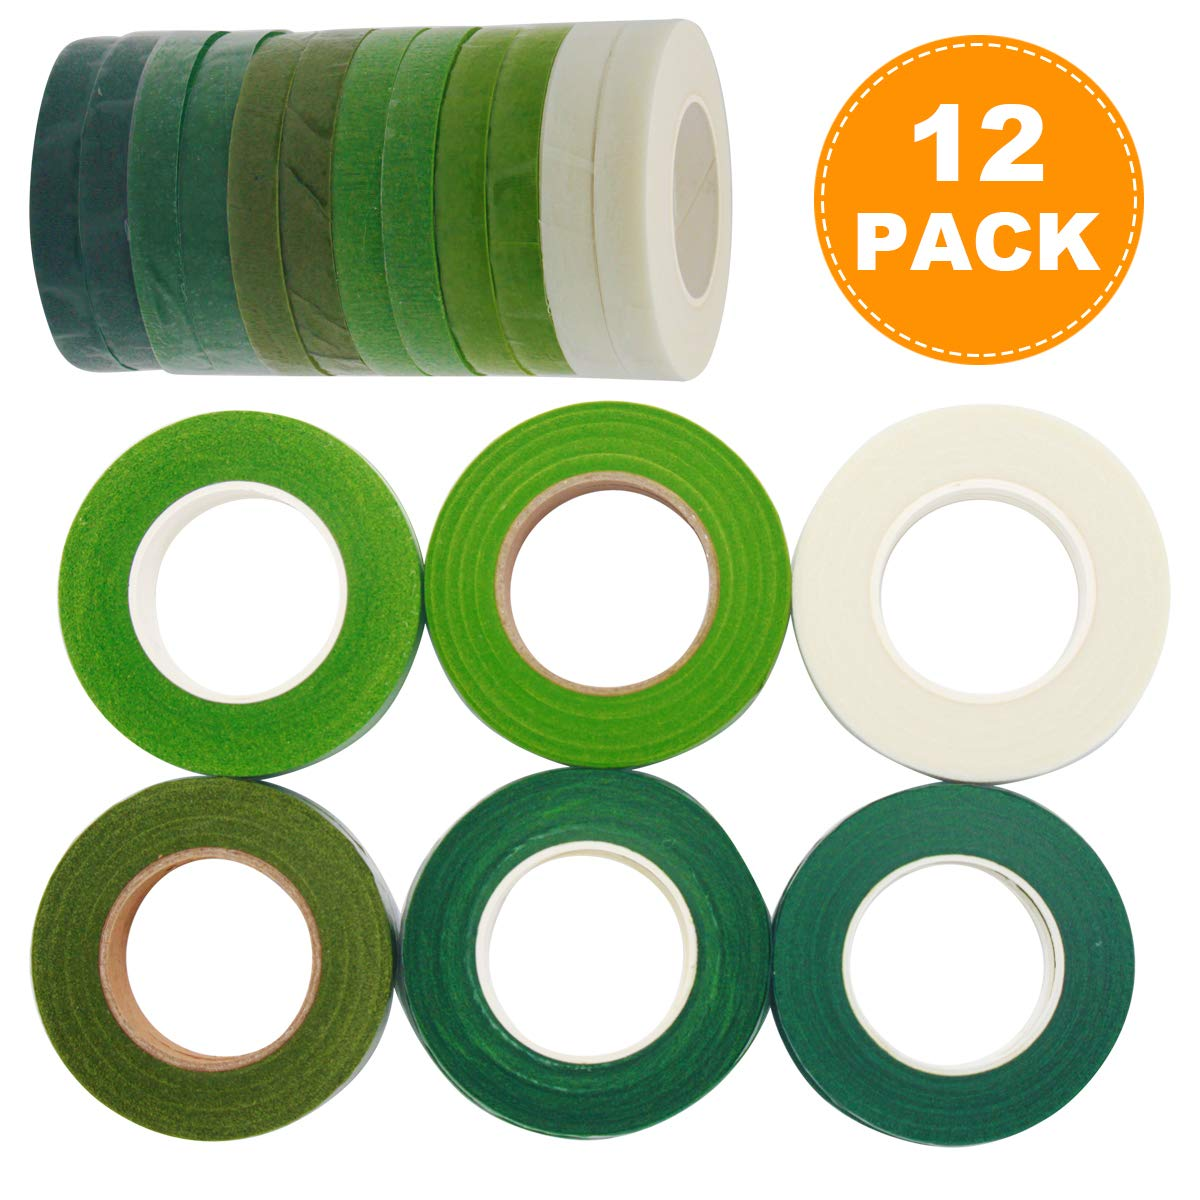 12 Rolls Floral Tape Stem Wrap Tape For Bouquet Stem Wrap 1/2'' x 30 Yards Florist Stem Wrap(2 Dark Green , 2 Middle Green, 4 Twig Green, 2 Olive Green and 2 White)